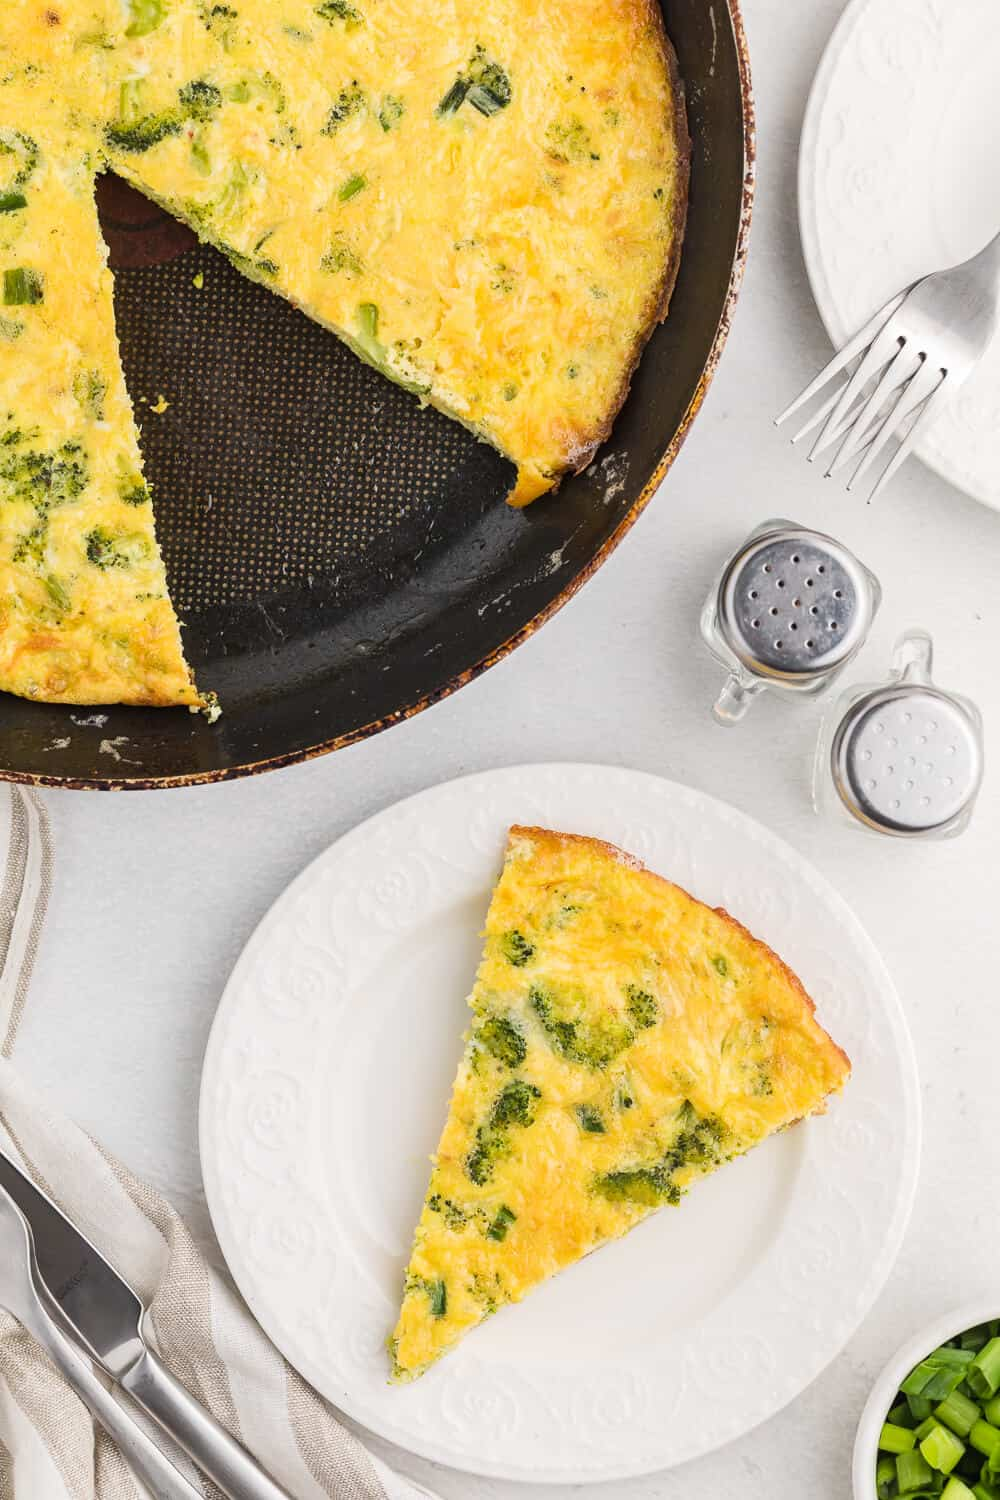 Broccoli Frittata - The classic and delicious combination of broccoli and cheese are the perfect pair in this quick and easy oven-baked frittata. Fresh or frozen broccoli can be used to make this quick and easy meal.